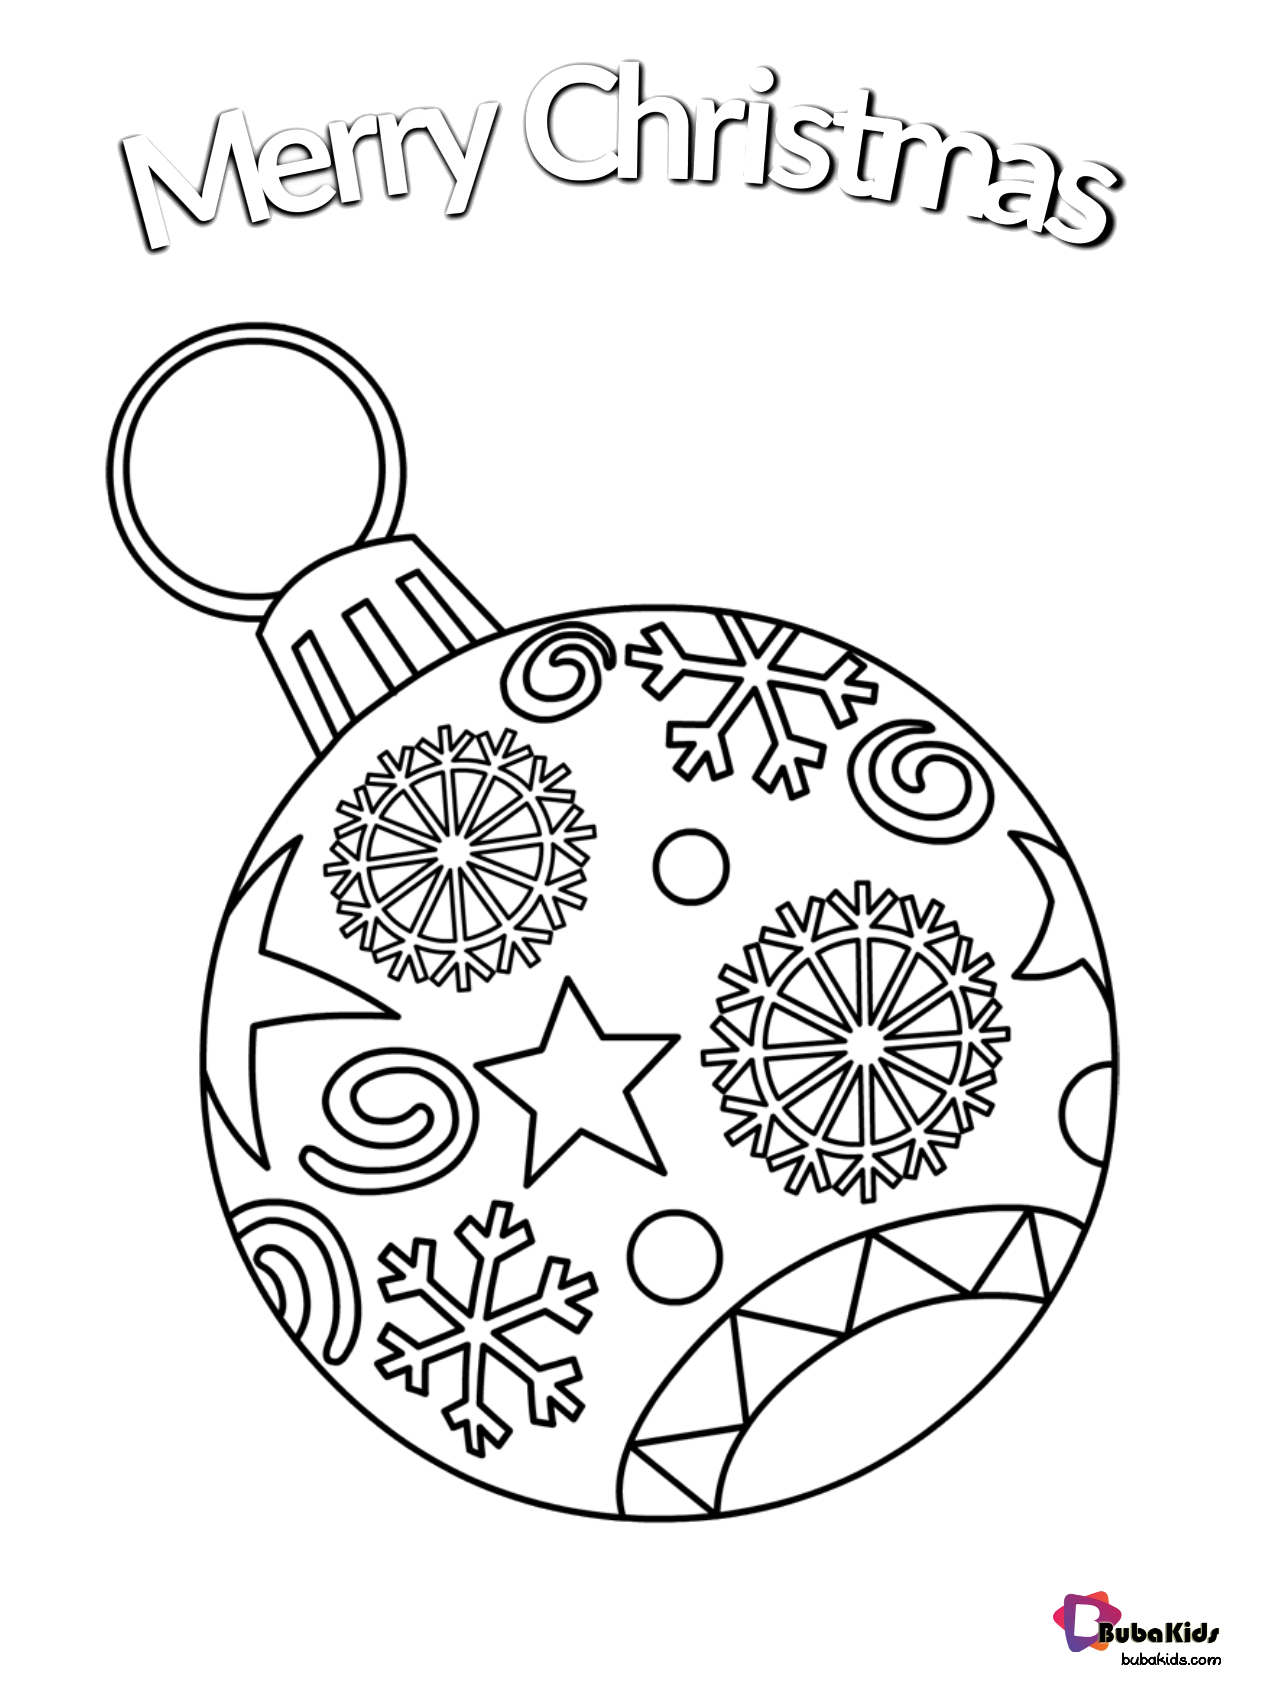 Christmas Tree Ornament Coloring Page Collection Of Cartoon Coloring Pages For Teenage Printable That You Can Download And Print Christmas Christmas Tree Or